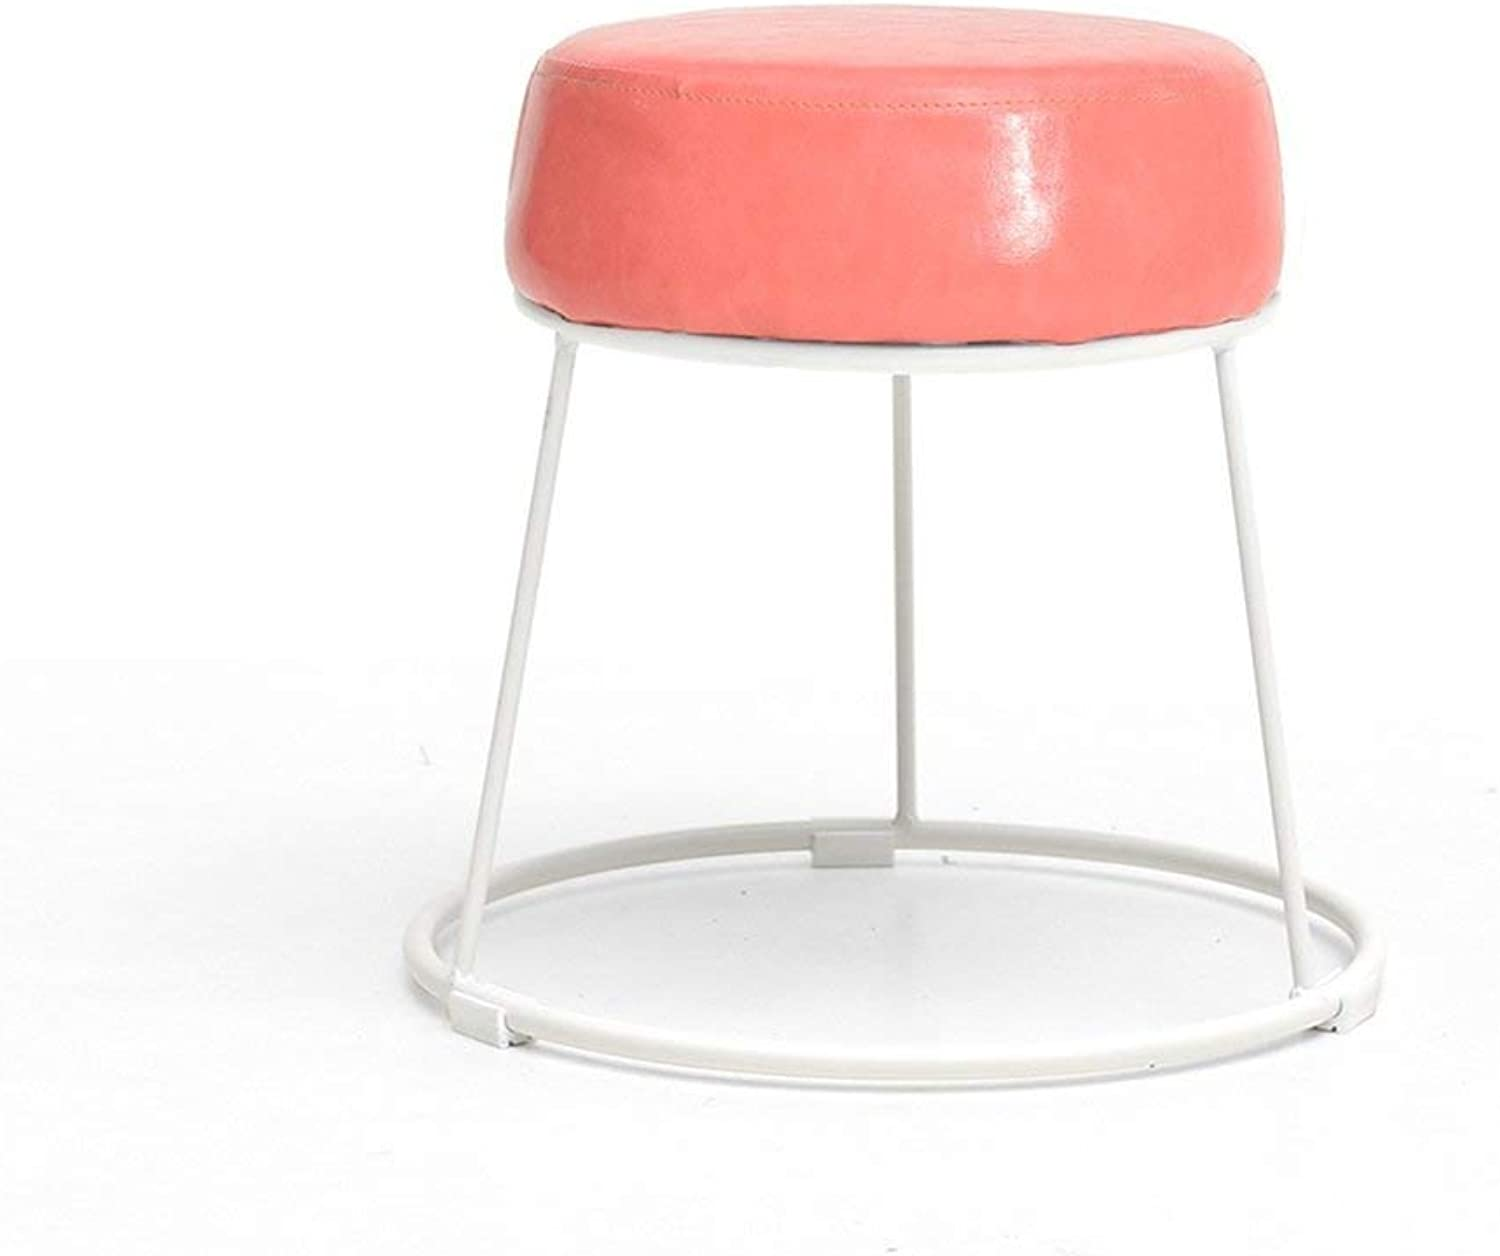 Comfortable Lounge Chair Fashion Makeup Stool Home Makeup Stool Iron Round Stool for Living Room Sofa Bench Dining Stool (color   Camel color) (color   Pink)